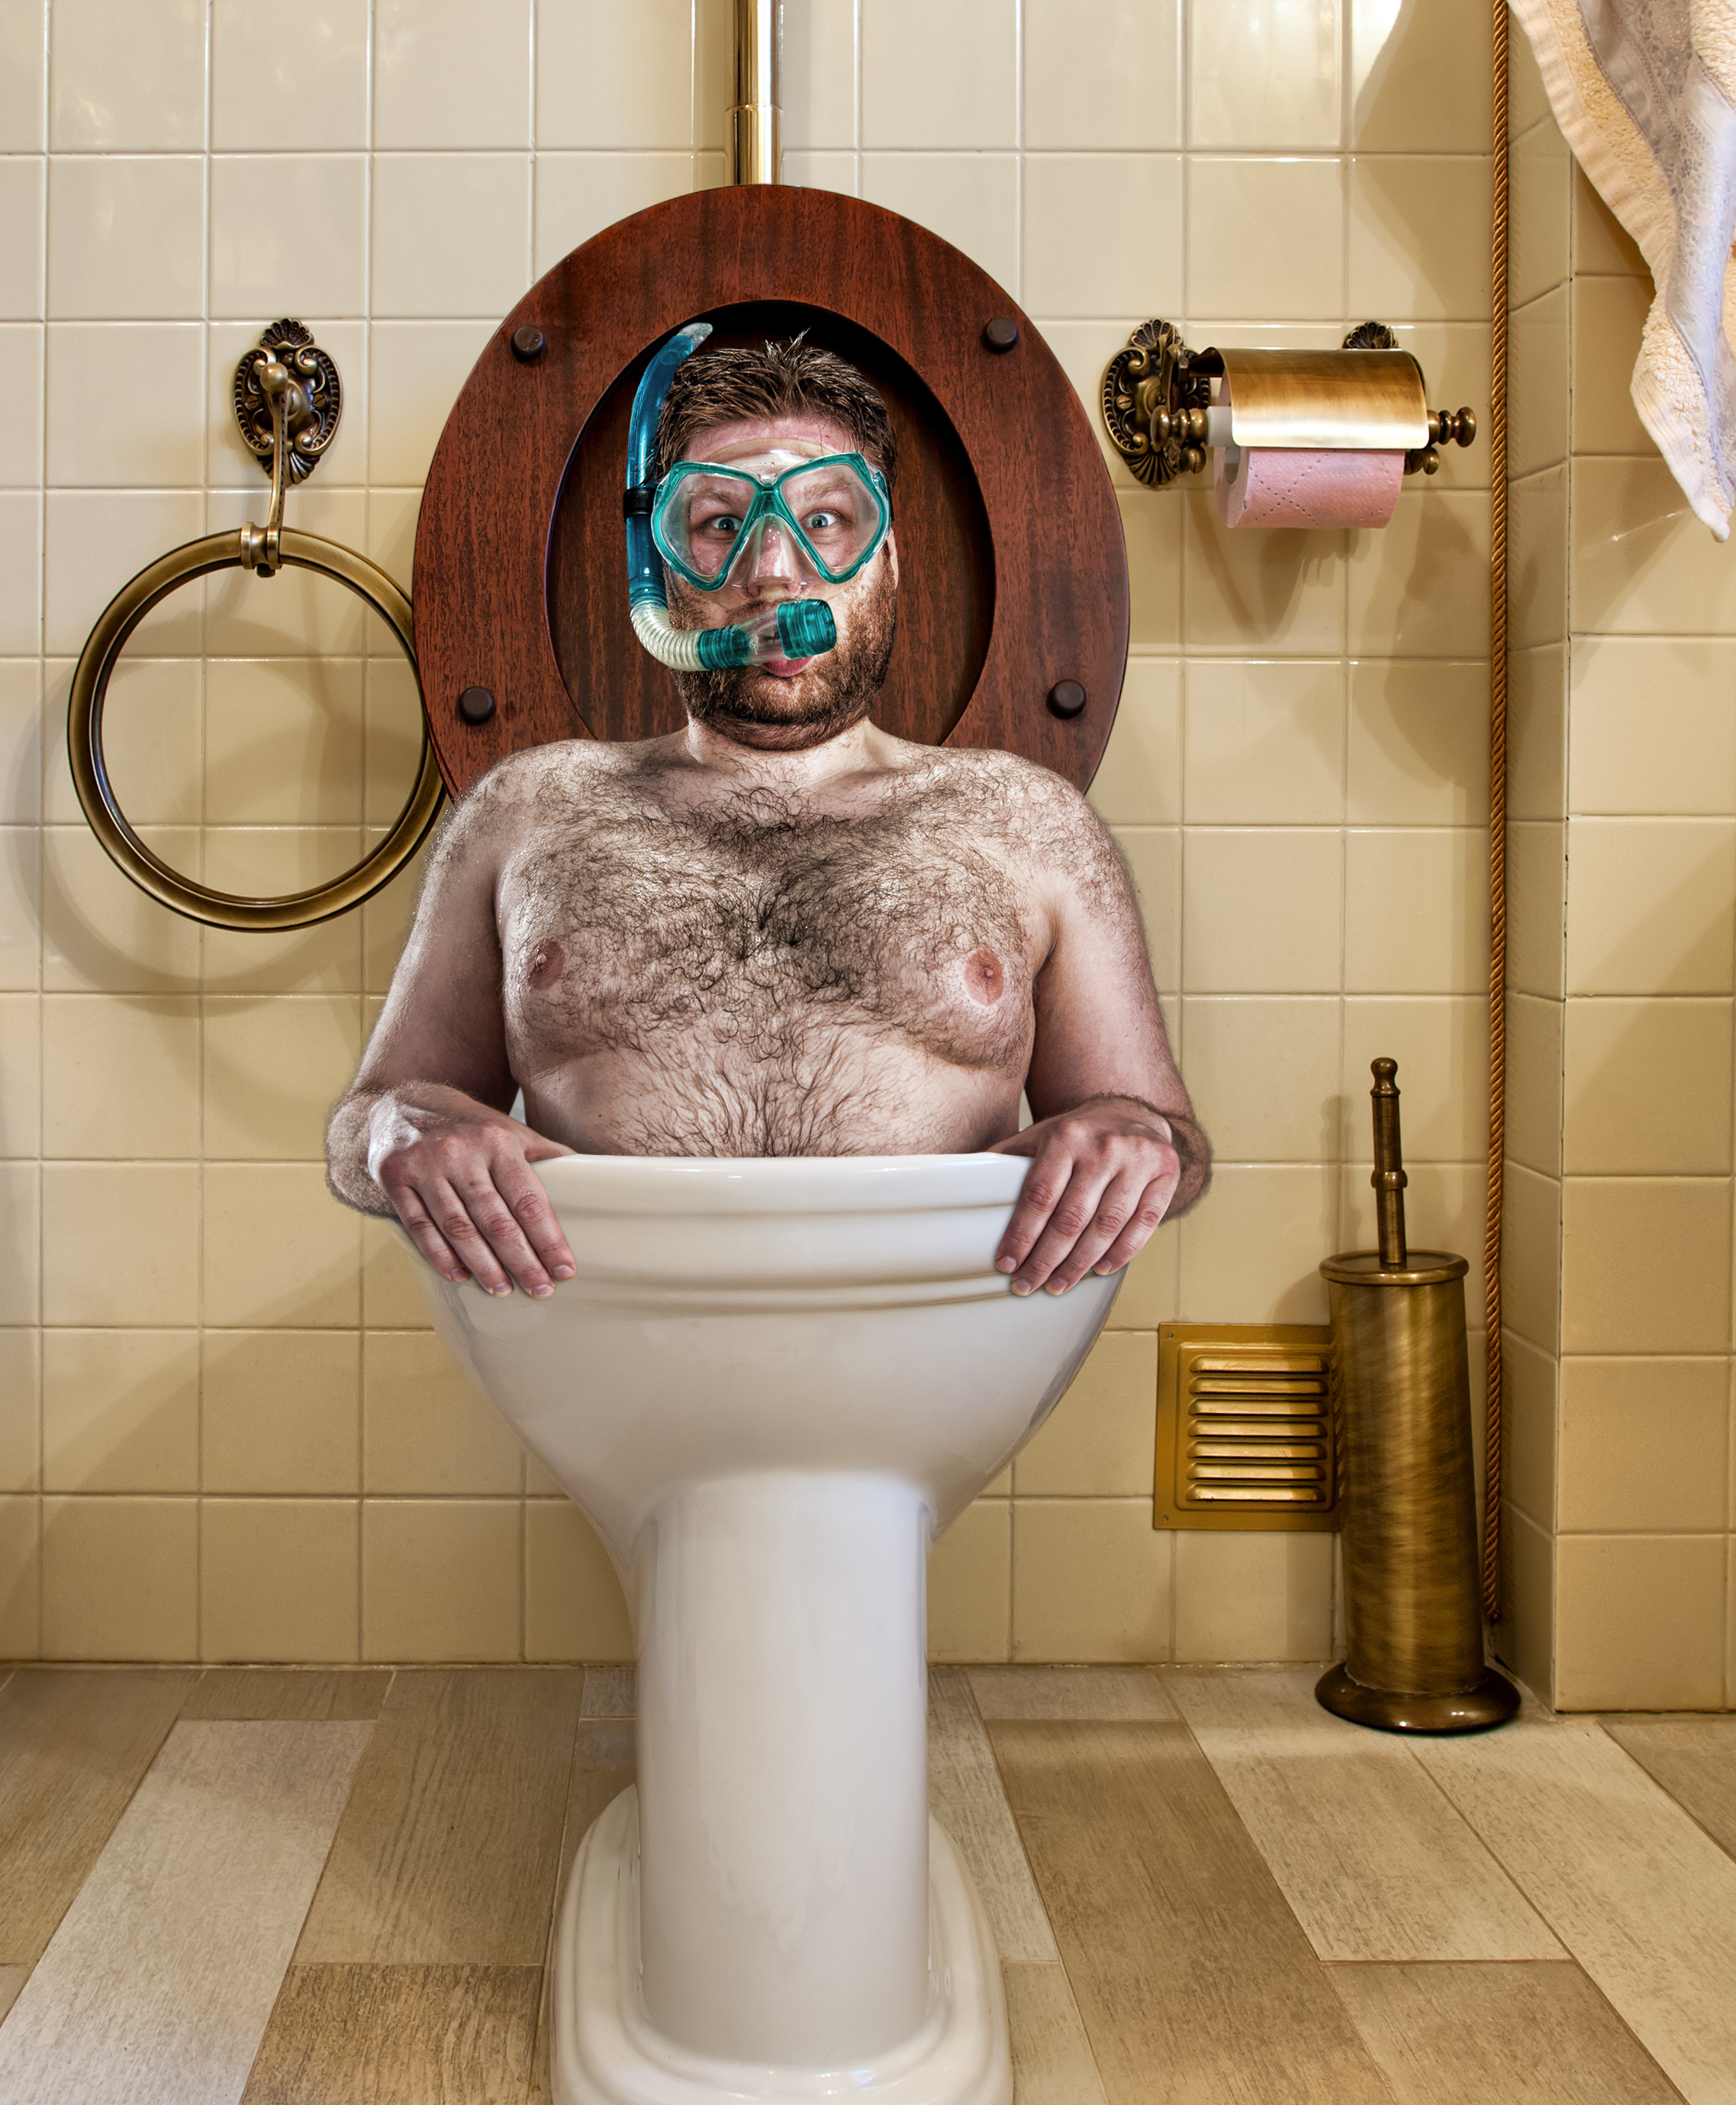 Bad stock picture: guy diving in toilets